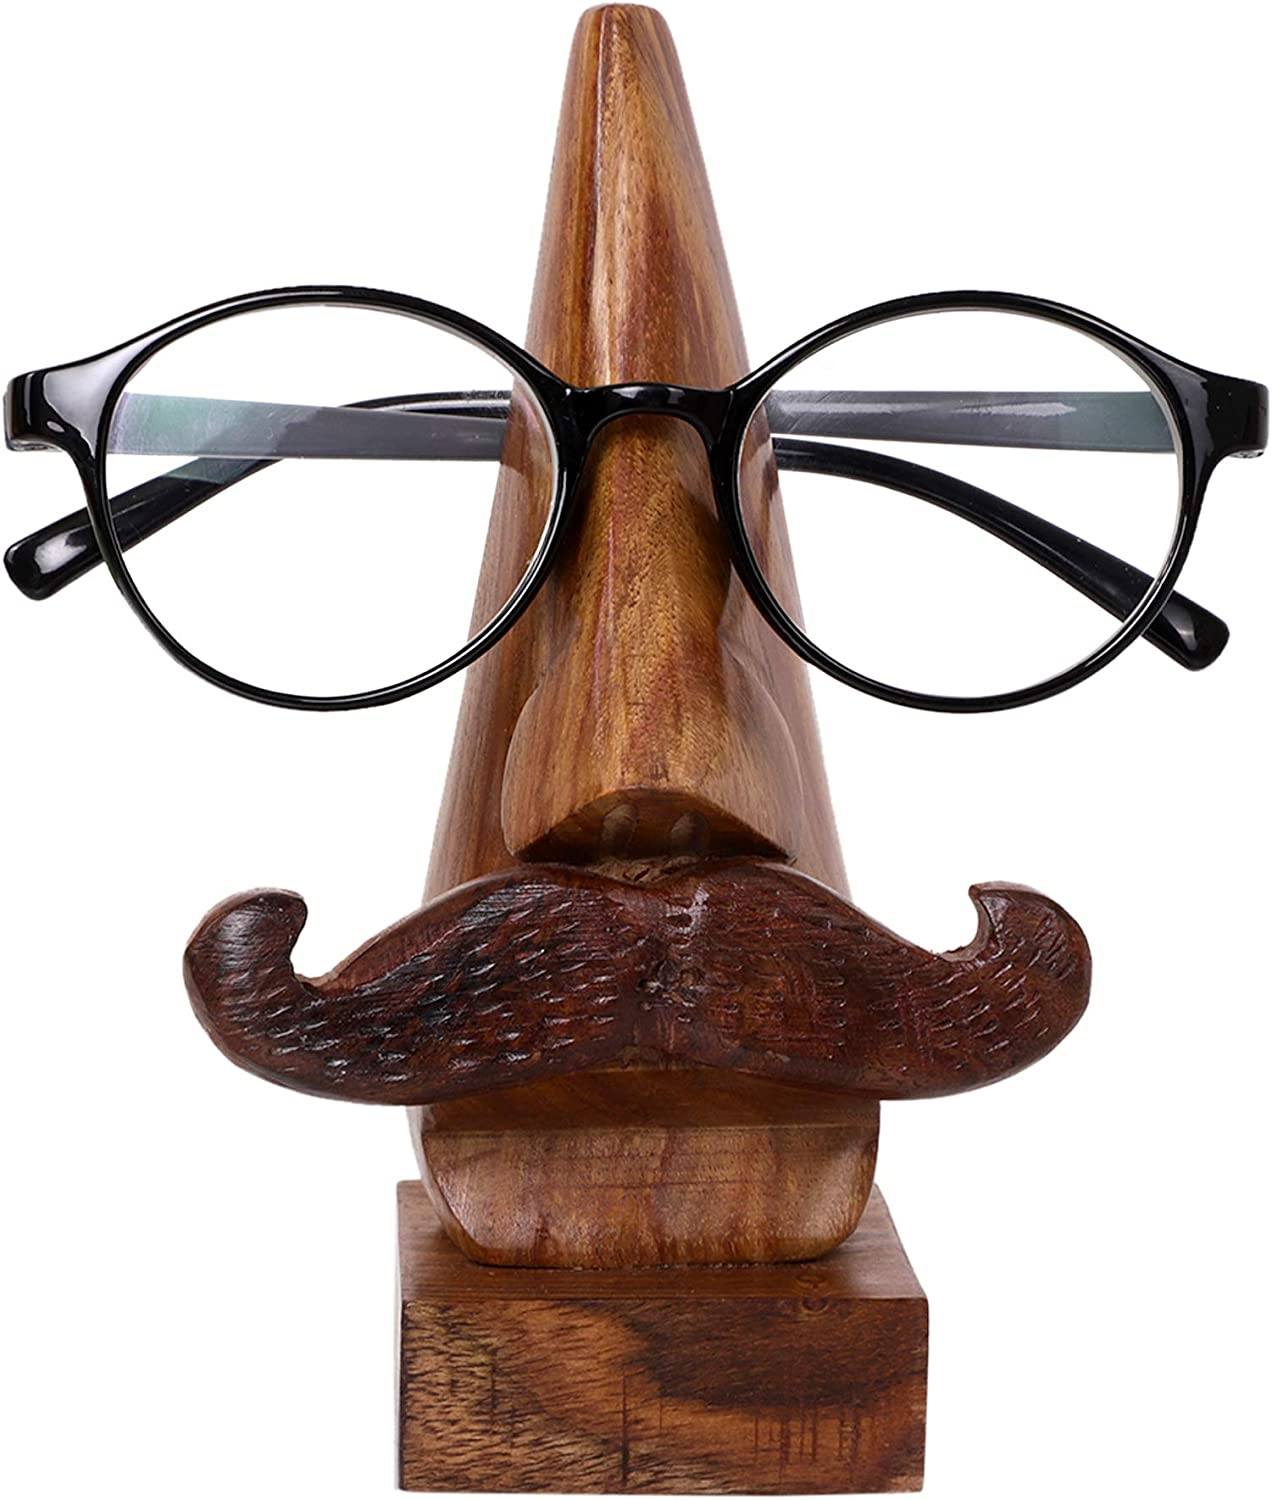 S.B.ARTS Handcrafted Wooden Spectacle Eyeglasses Holder Classic Nose Shaped Eyewear Retainer-Sunglasses Holder Display Stand, Spectacle Stand- Optical Glass Accesories, Home Office Desk Decor Gift